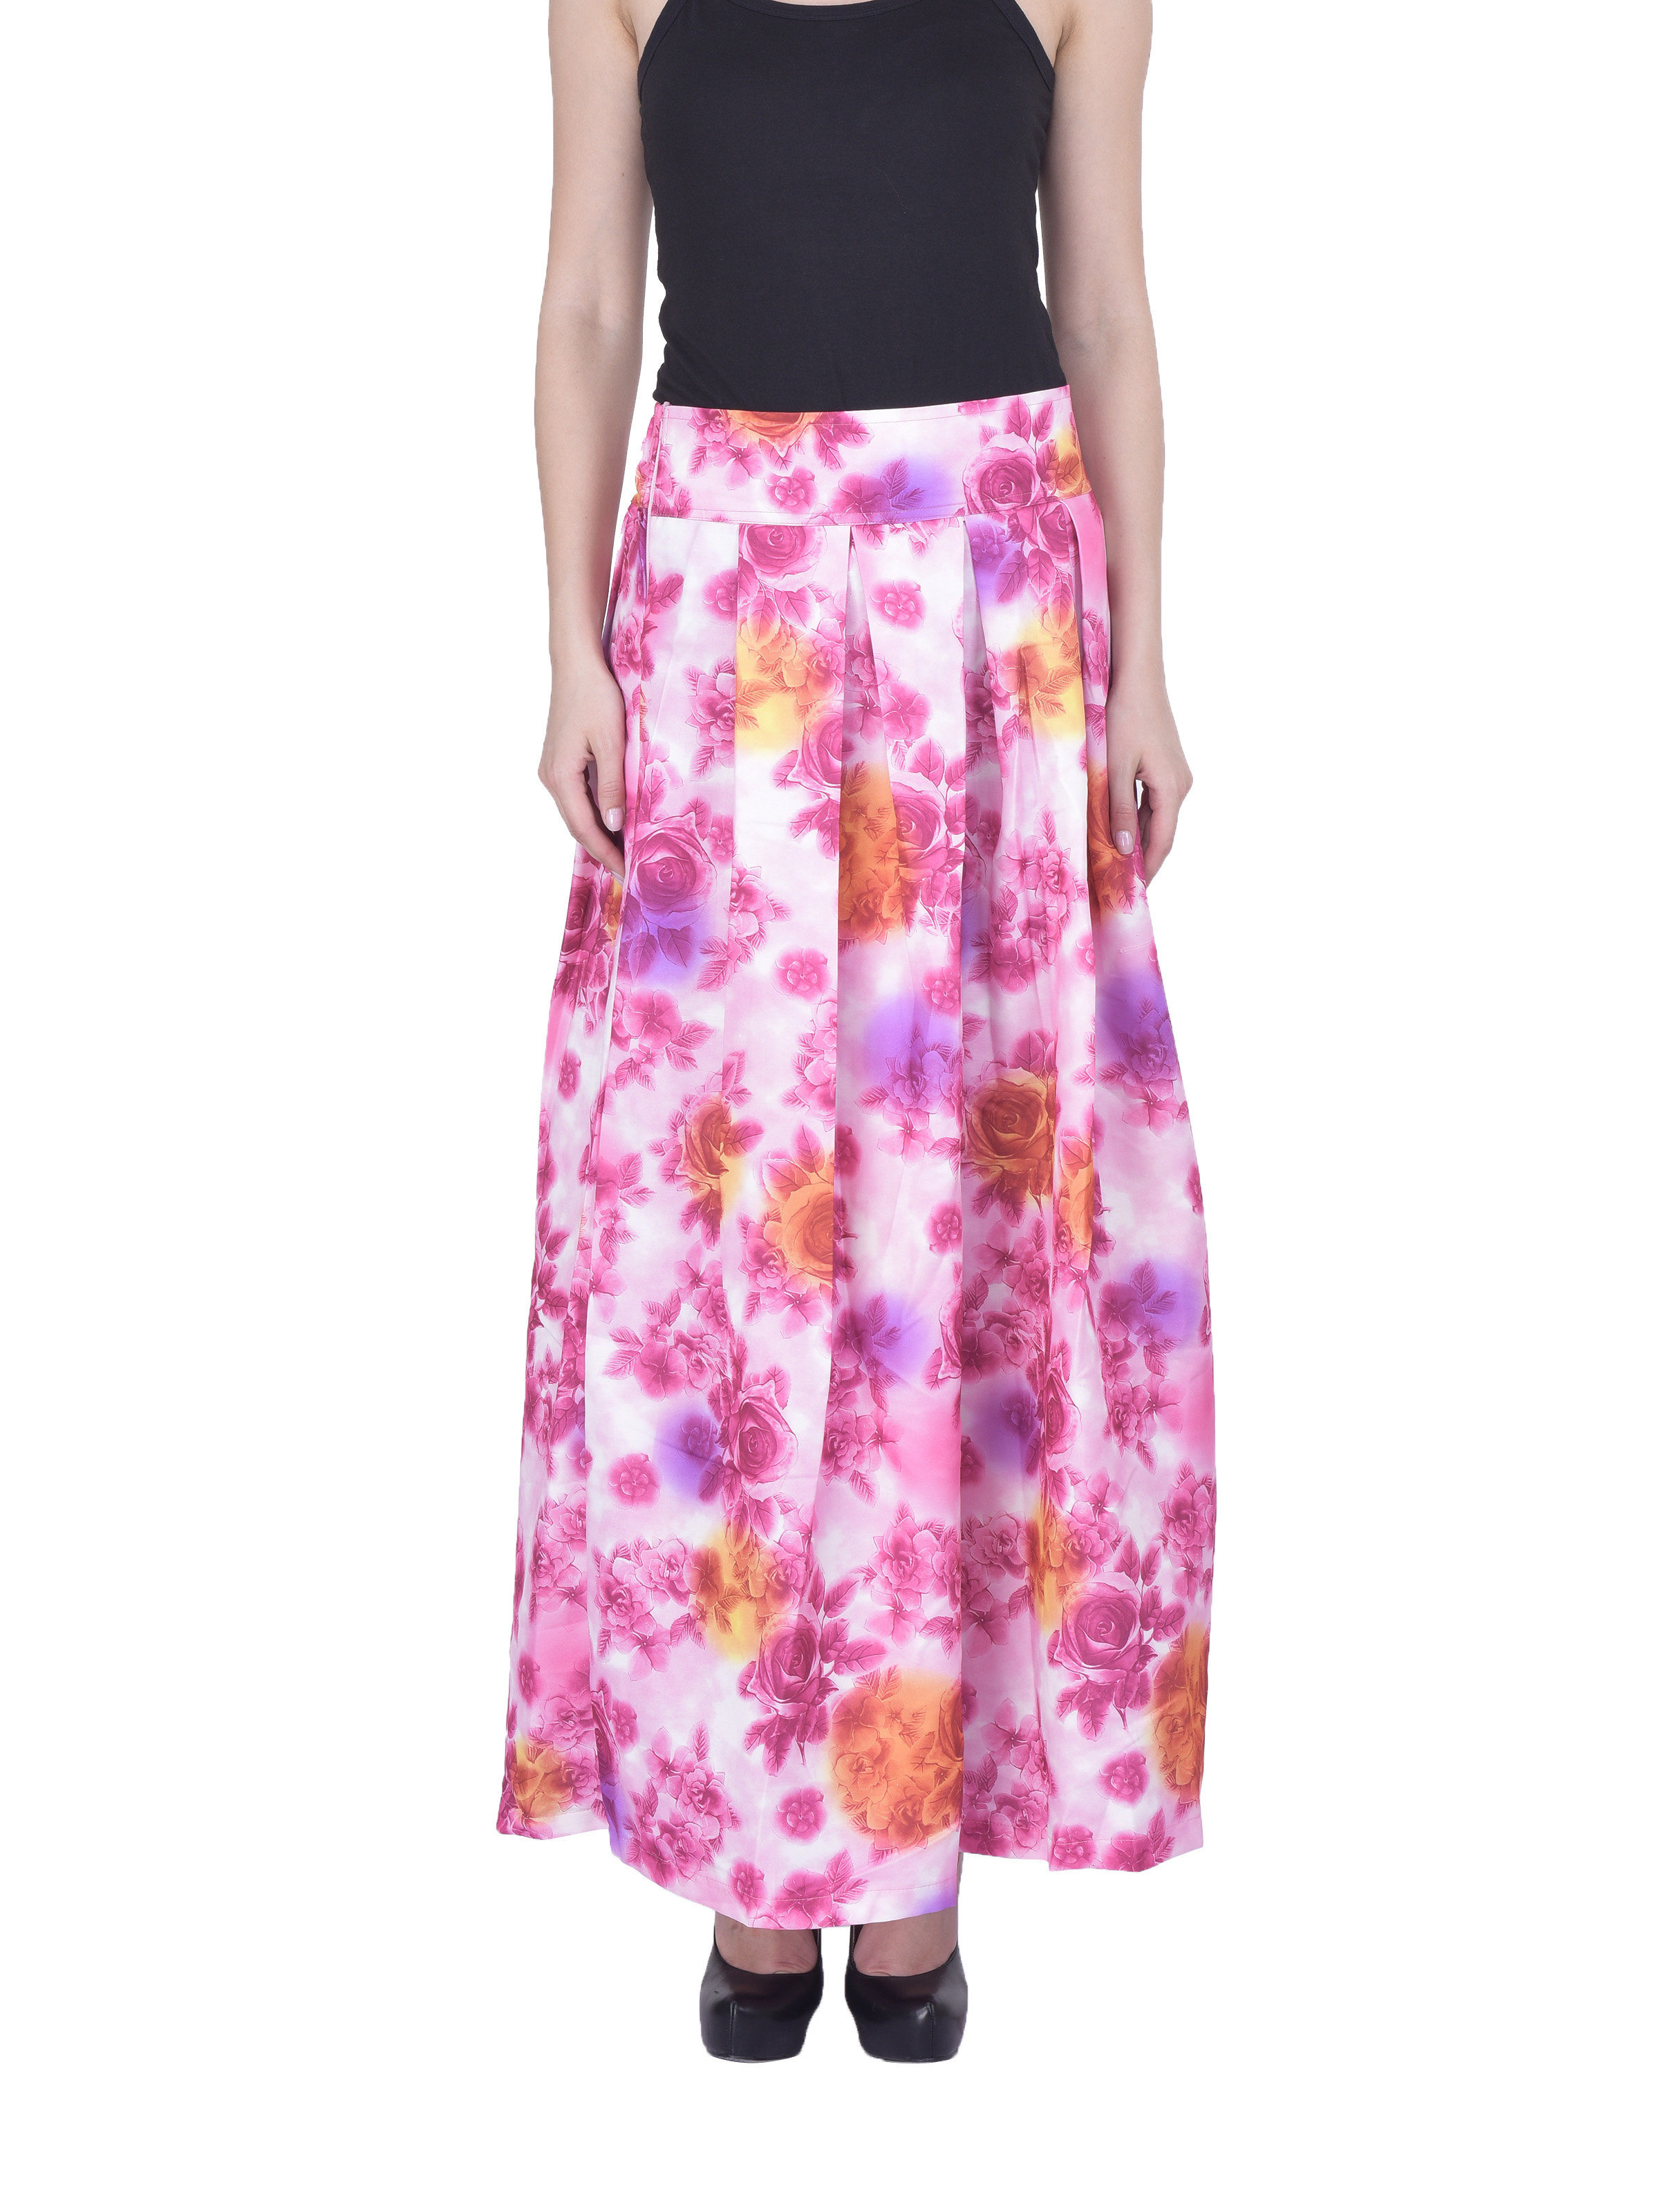 chicflic2 Women Floral Maxi Pleated Skirt Sk164f